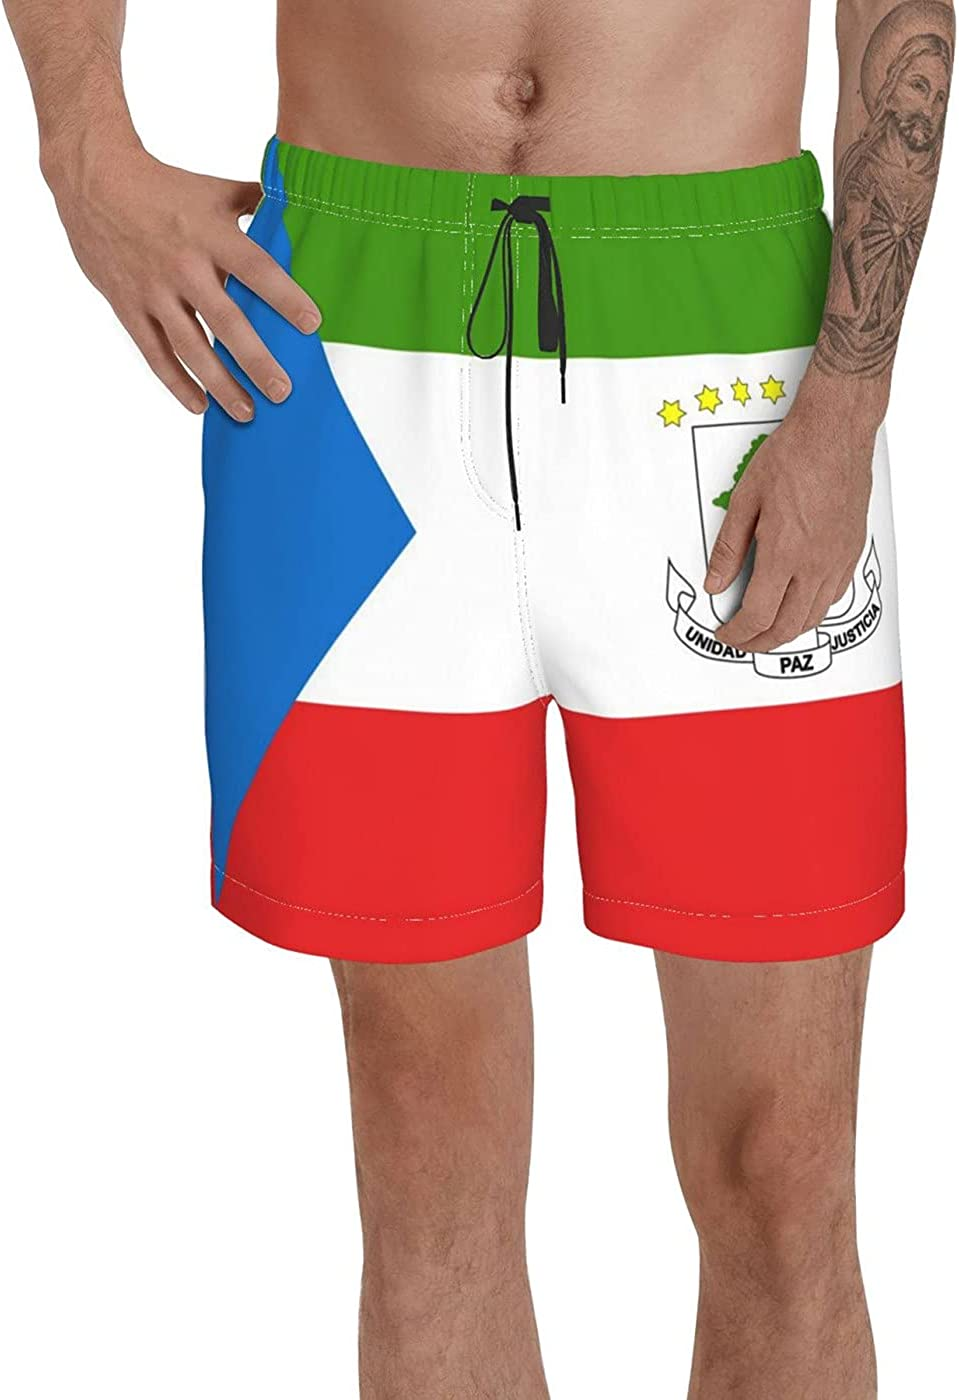 Count Equatorial Guinea Flag Men's 3D Printed Funny Summer Quick Dry Swim Short Board Shorts with